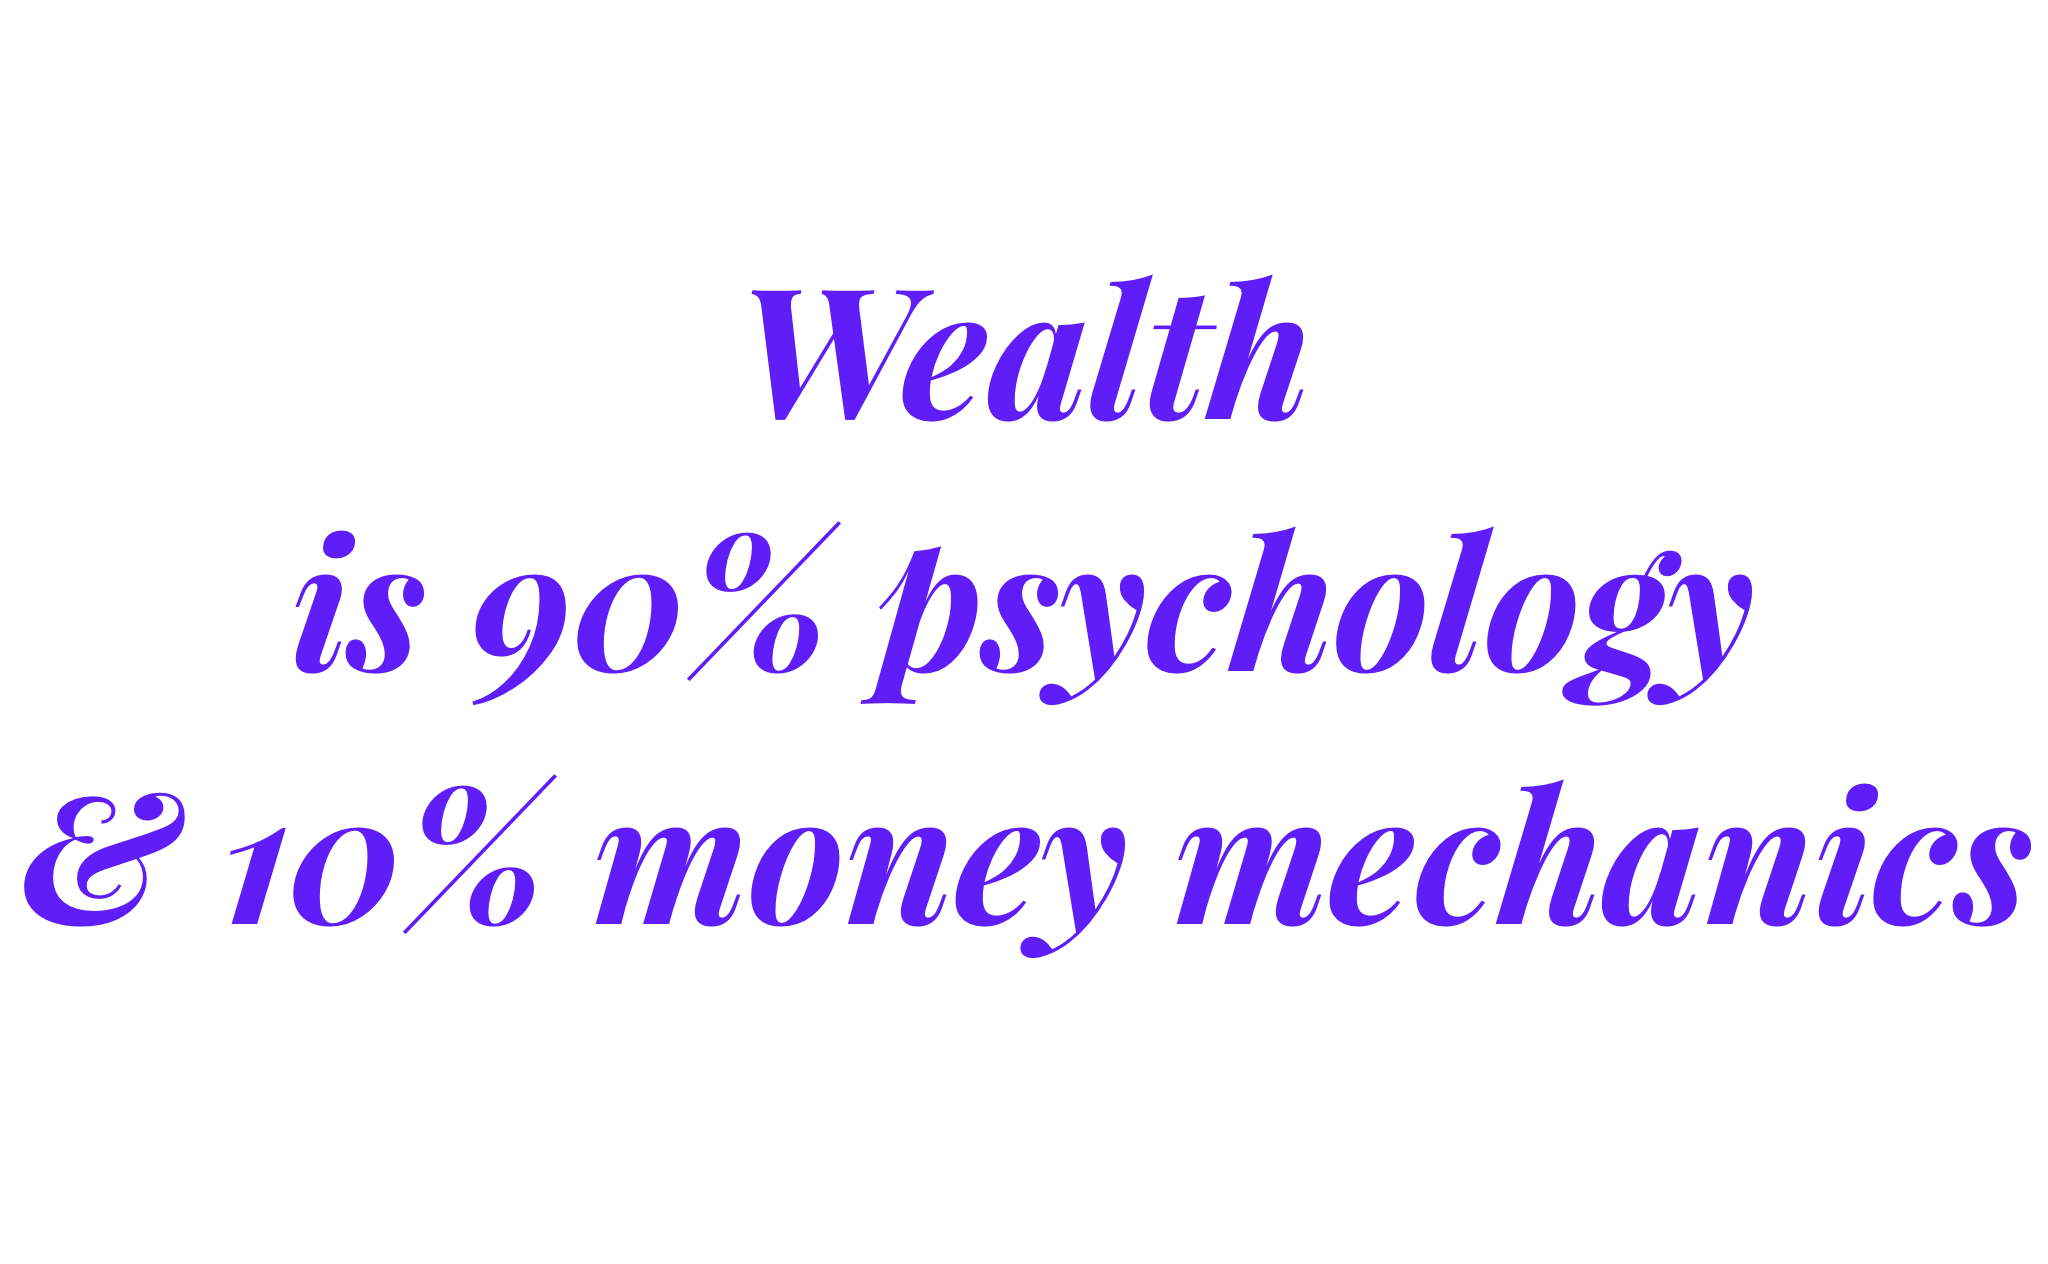 Wealth is 90% Psychology & 10% Money Mechanics